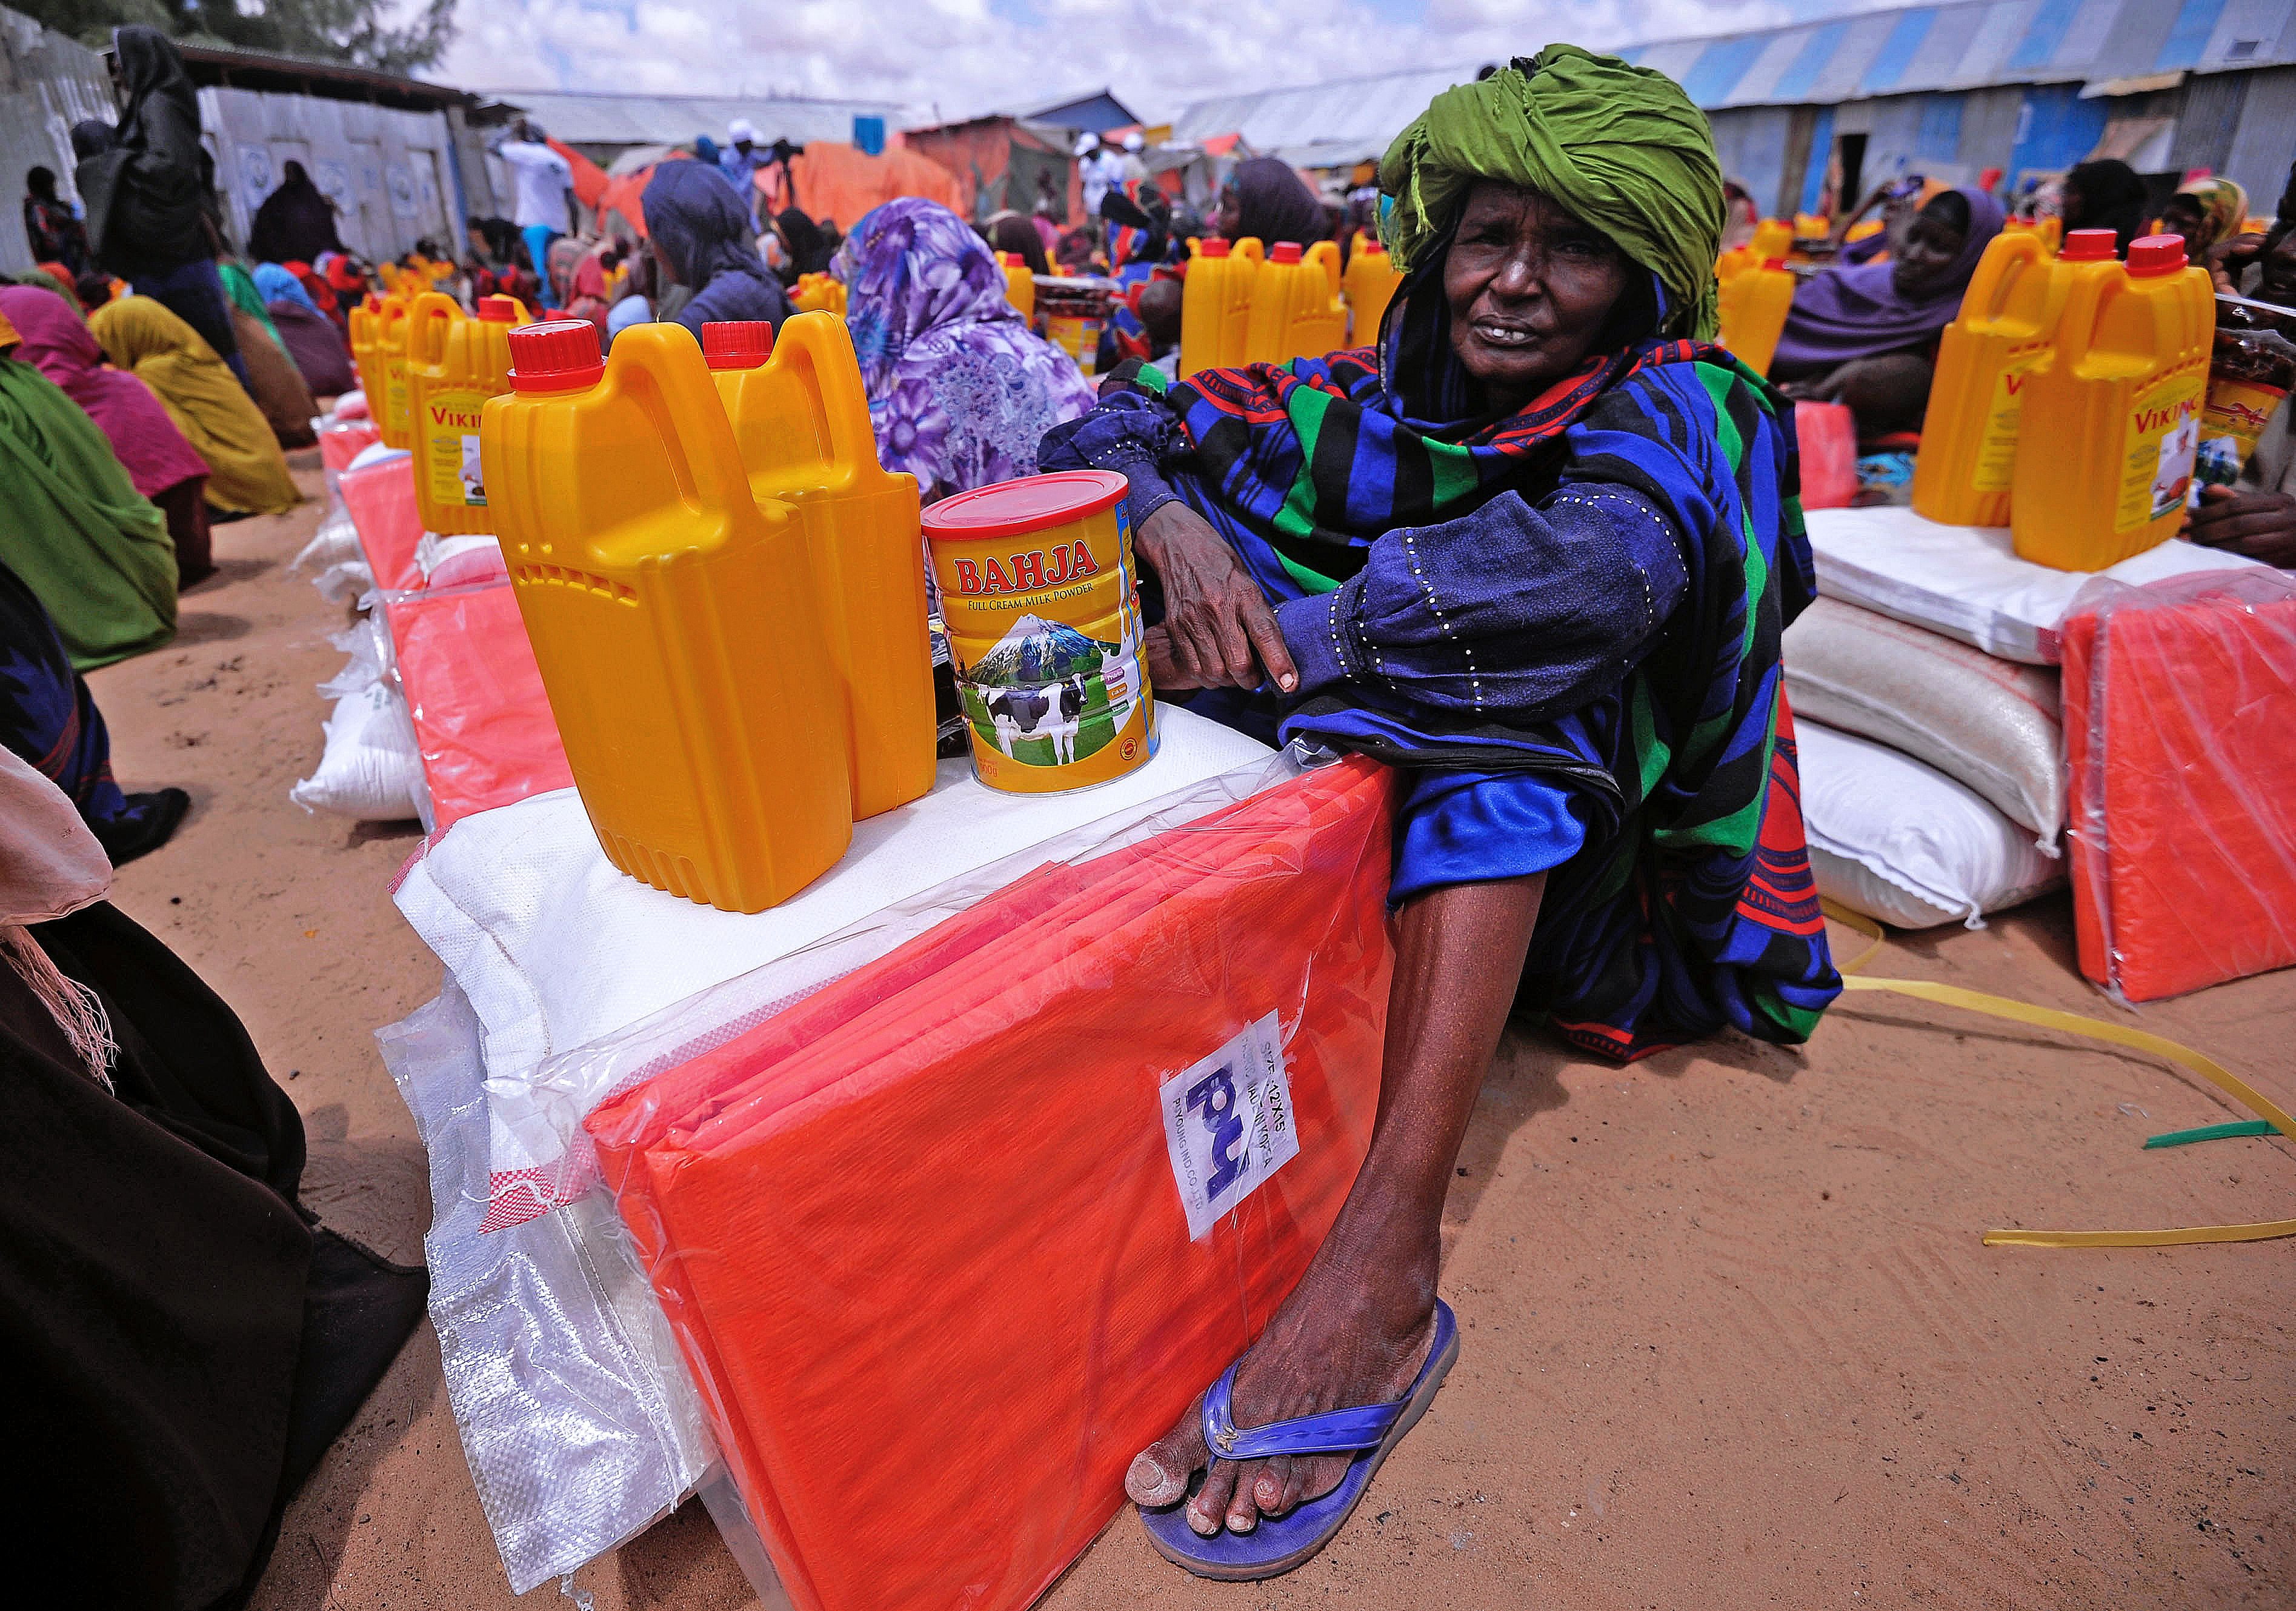 A Somali woman displaced by drought waits for food and water at an aid distribution centre outside Mogadishu on April 6, 2017.